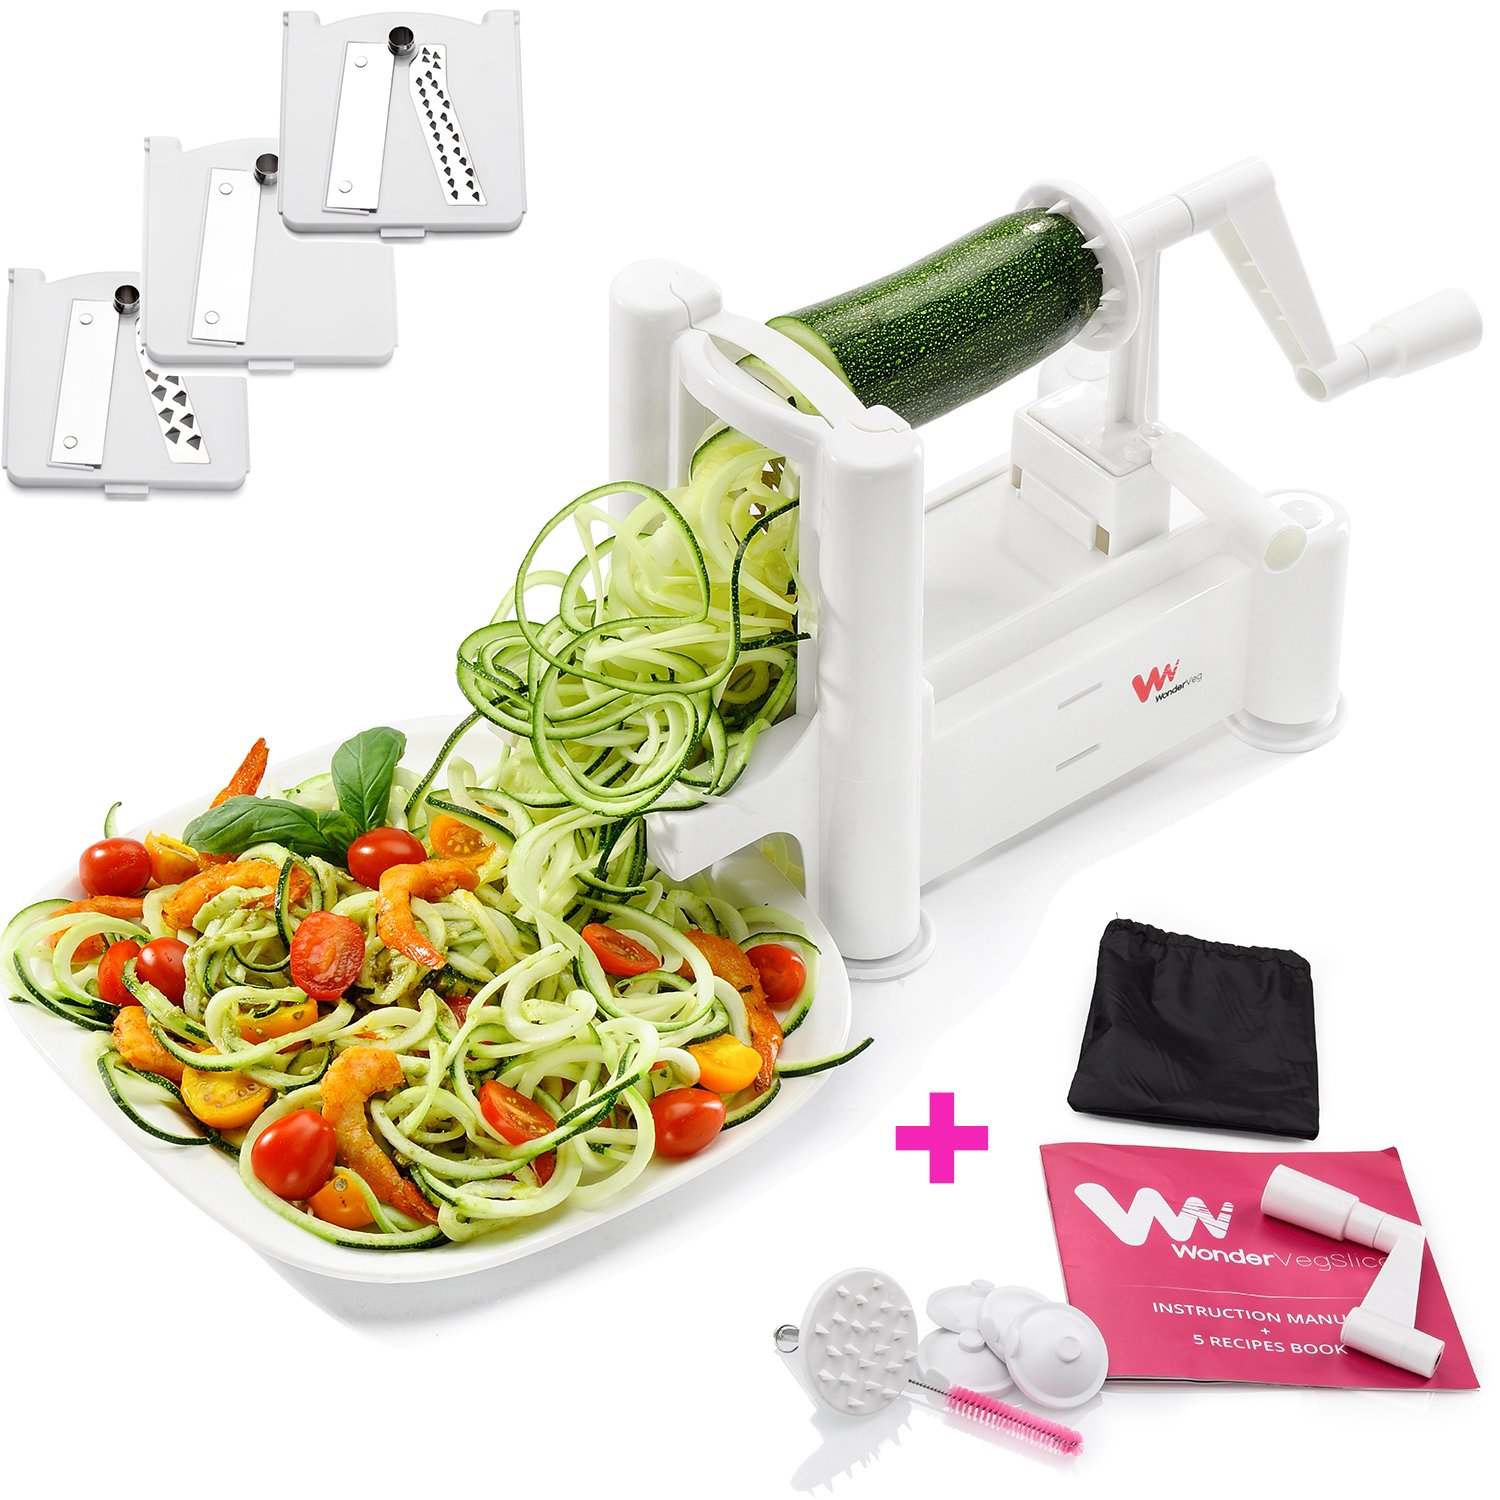 Amazon mandolines slicers home kitchen egg slicers more wonderveg veggie spiralizer vegetable slicer zucchini spaghetti pasta noodle maker cleaning brush fandeluxe Image collections